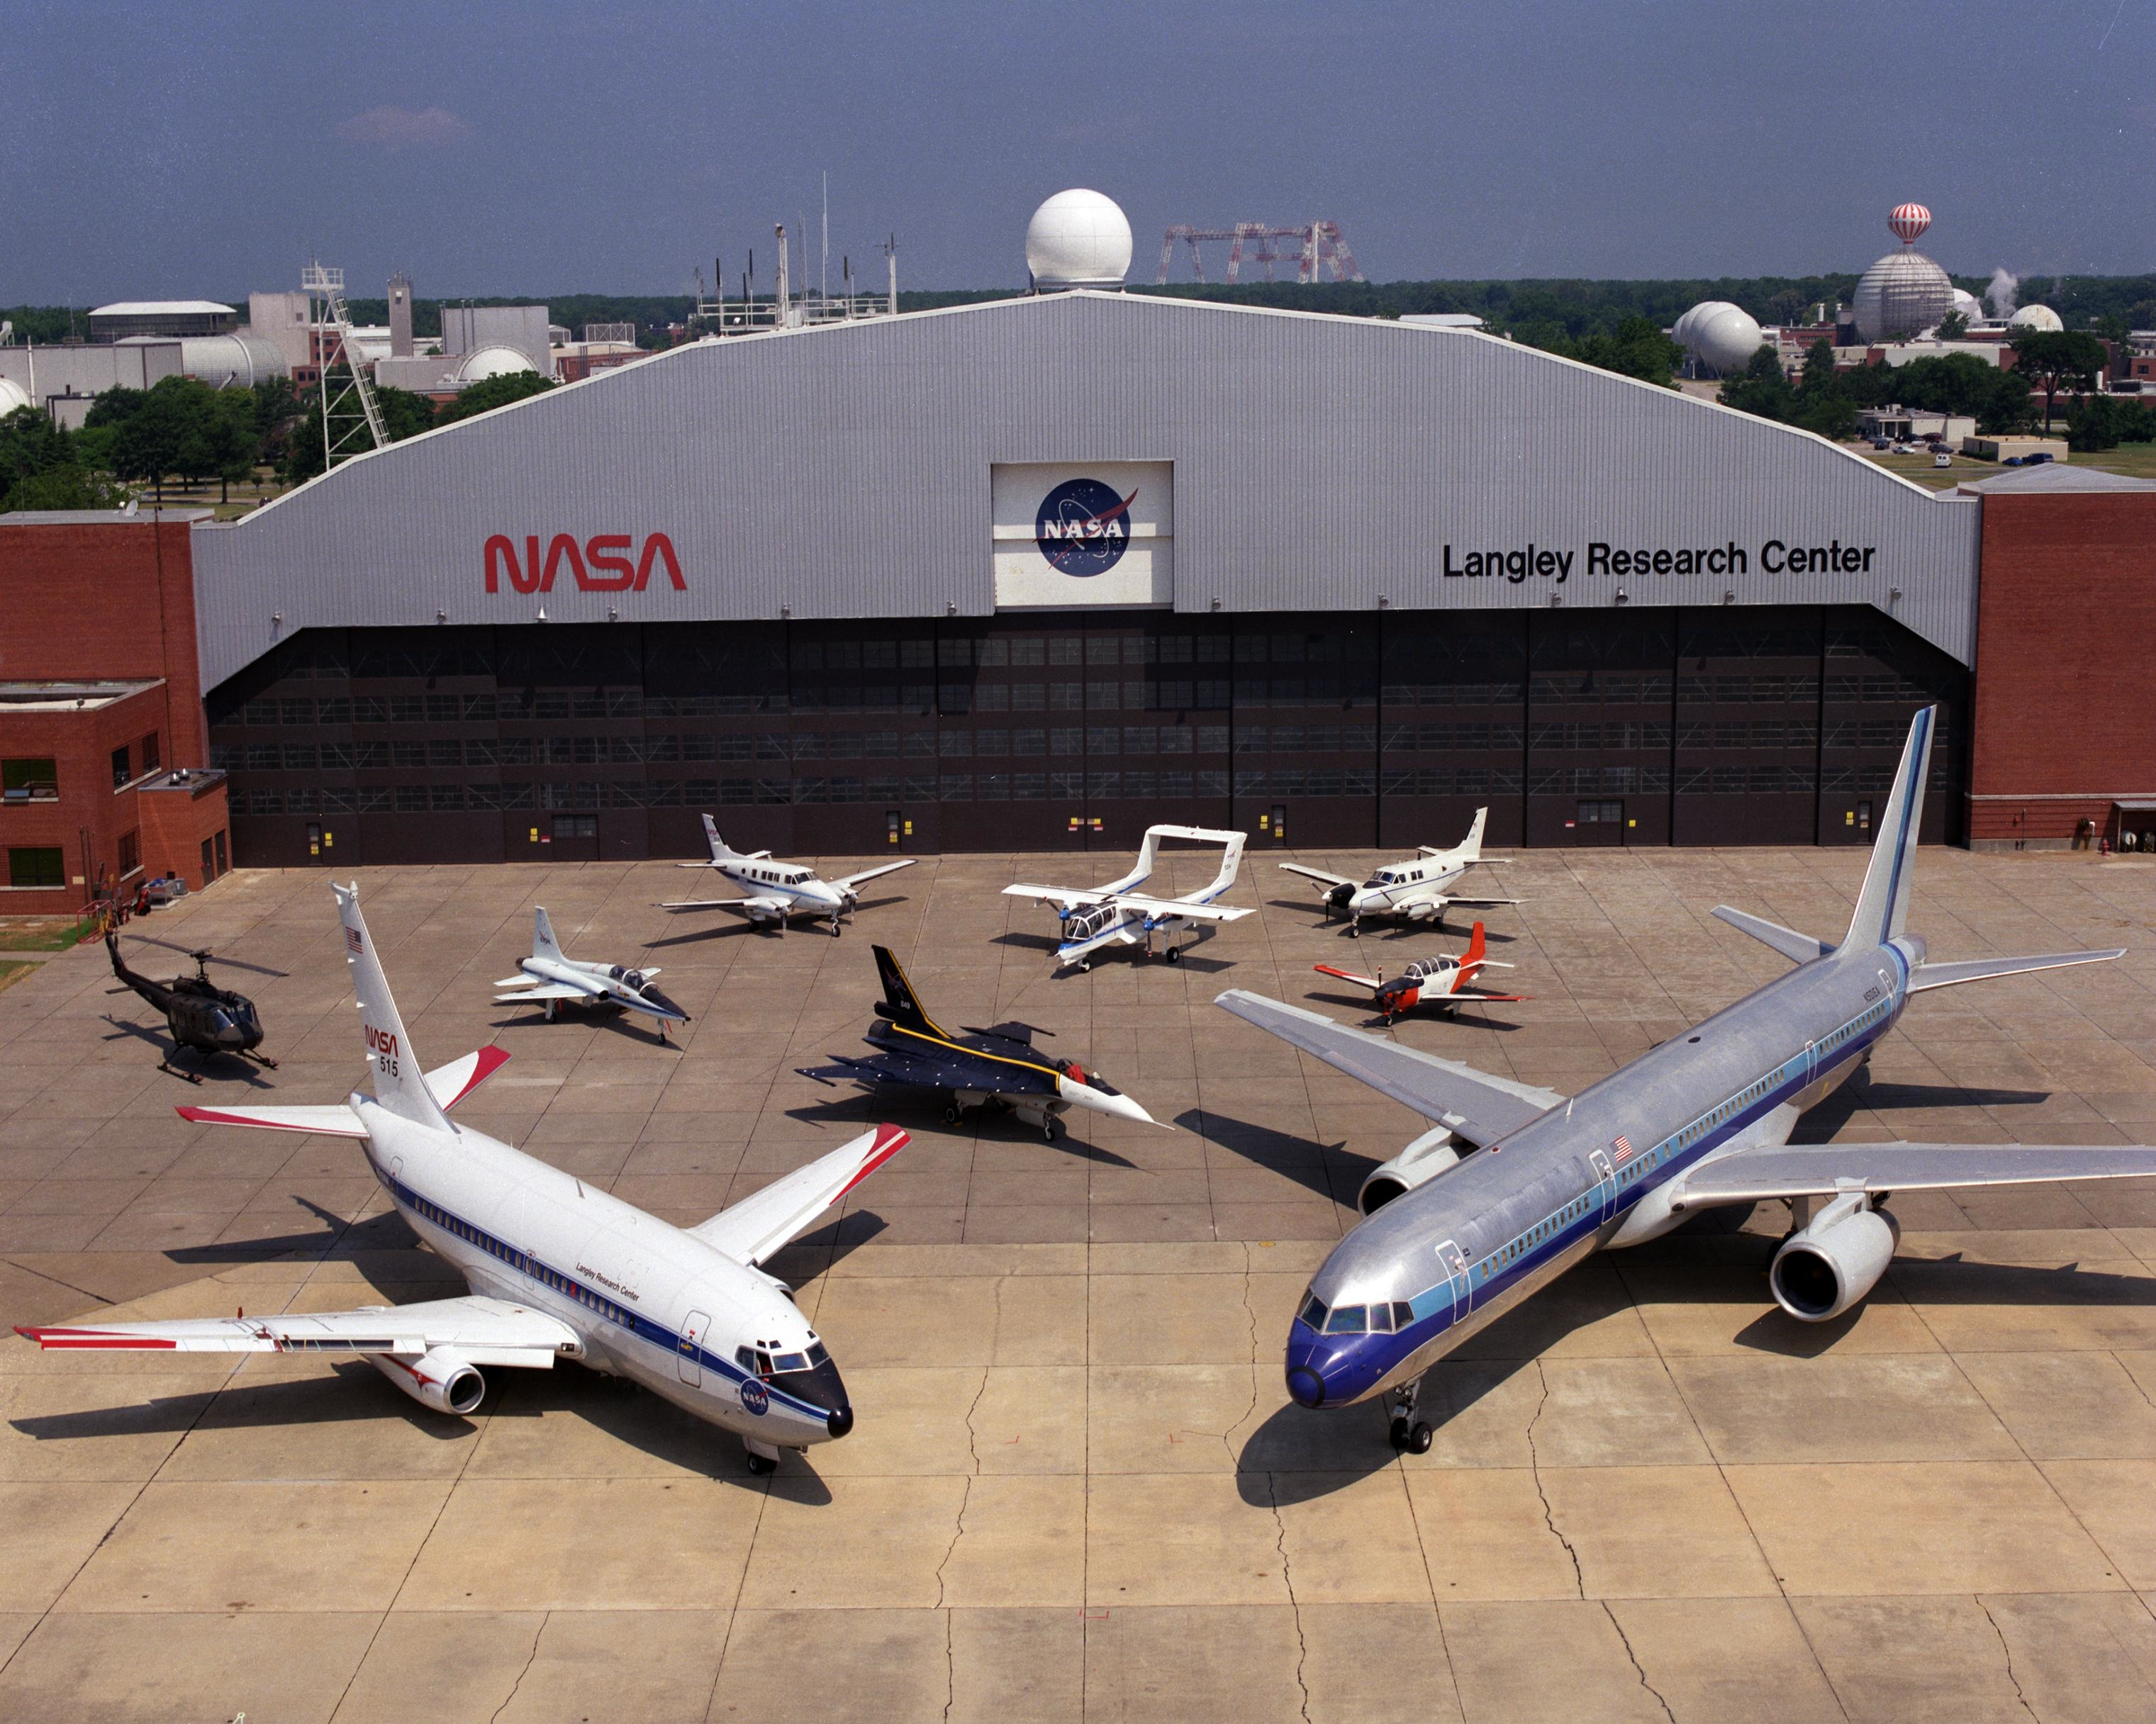 File:Langley Research Center aircraft - EL-1996-00055.jpeg ...